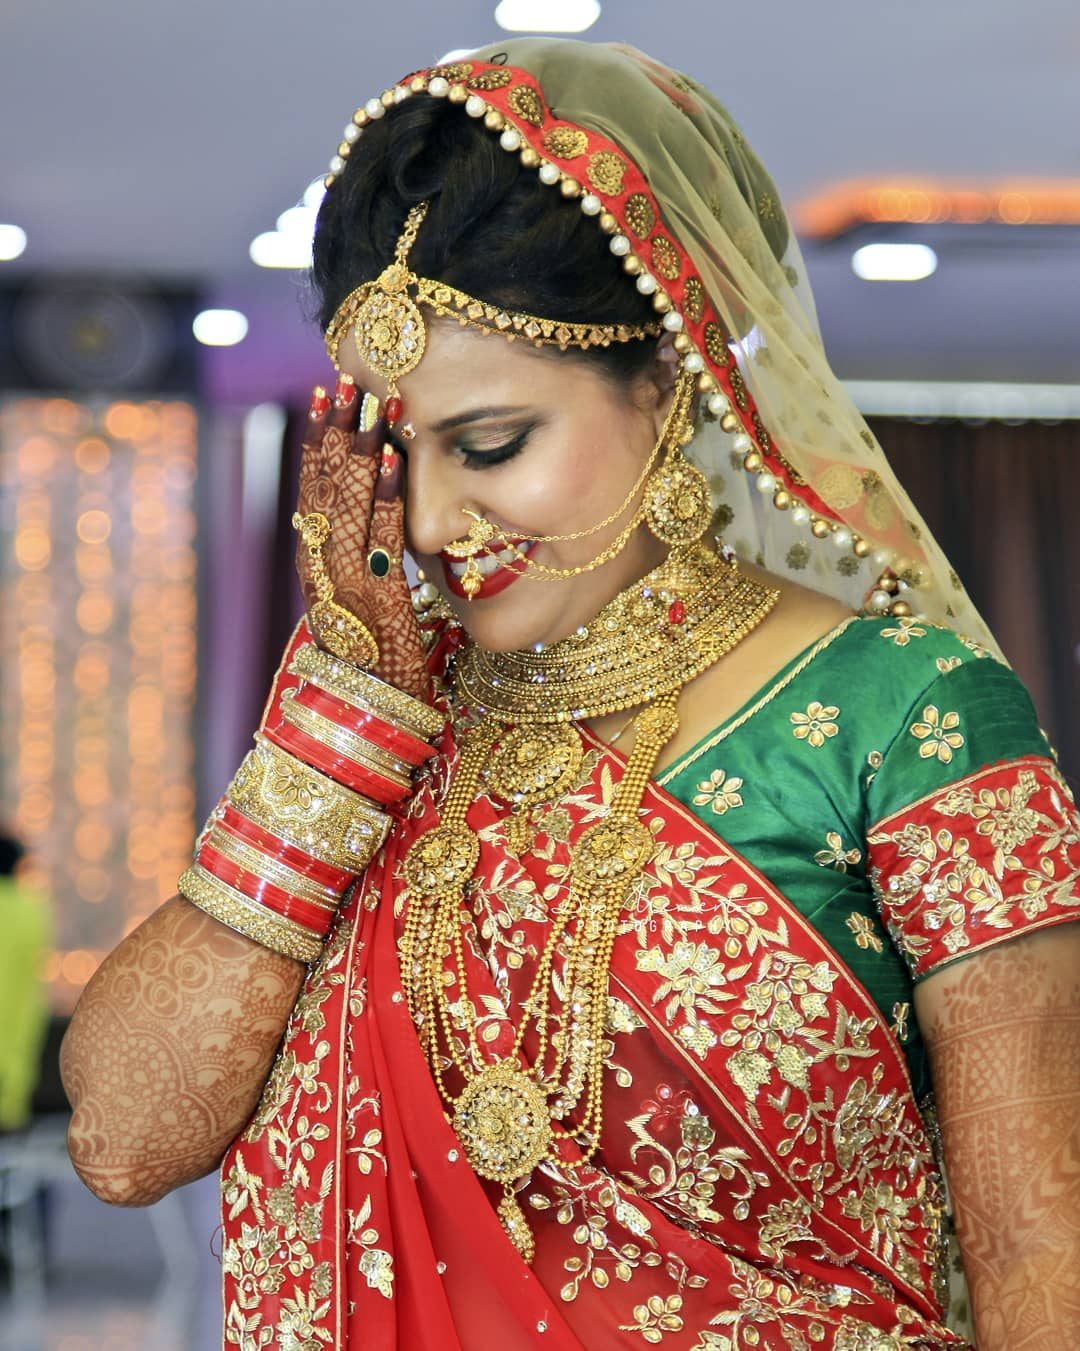 The Bride. With the grace and elegance, there she comes to the most important days in her life. ✨✨✨✨✨✨✨✨✨✨✨✨✨✨✨✨✨ Wedding Portraits Shoot:#dipmementophotography@dip_memento_photography @dipthakkar.clickerhttps://www.facebook.com/photographybydip/✨✨✨✨✨✨✨✨✨✨✨✨✨✨✨✨✨#india #indian #photo #photography#photographer #pic #storiesofindia#candidshoot #indianphotography#indianphotographers #canvasofindia#weddingportrait #streetphotographyindia#ahmedabad #oph #official_photographers_hub#indianshutterbugs #indiaclicks #_coi#india_everyday #i_hobbygraphy #igersoftheday#ahmedabad_diaries #dslr_official#weddingphotographer #indianphotography#photographers_of_india #destinationwedding